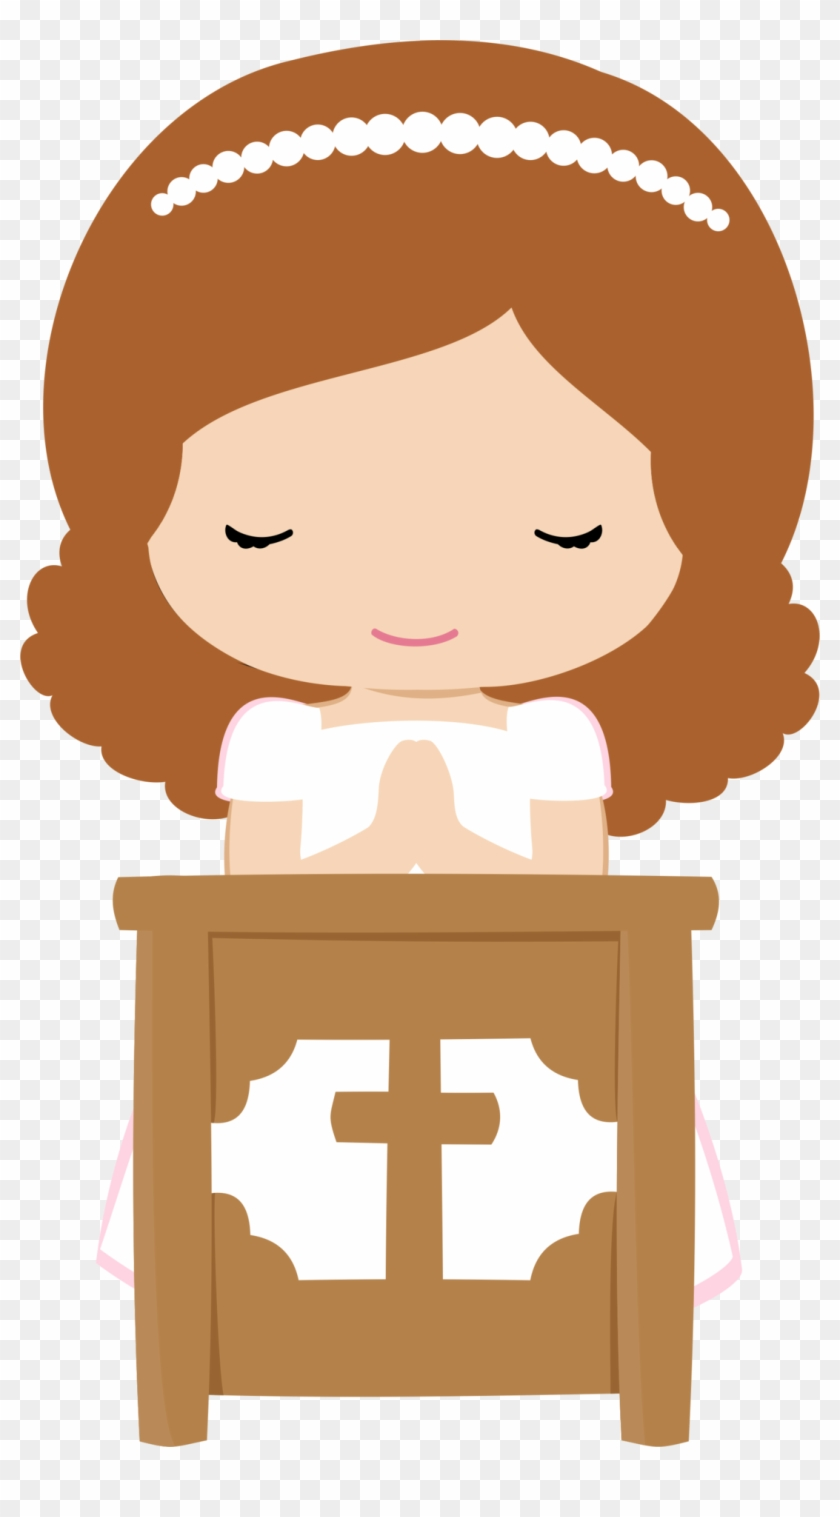 Girls In Their First Communion Clip Art - First Communion Girl Clipart #98523